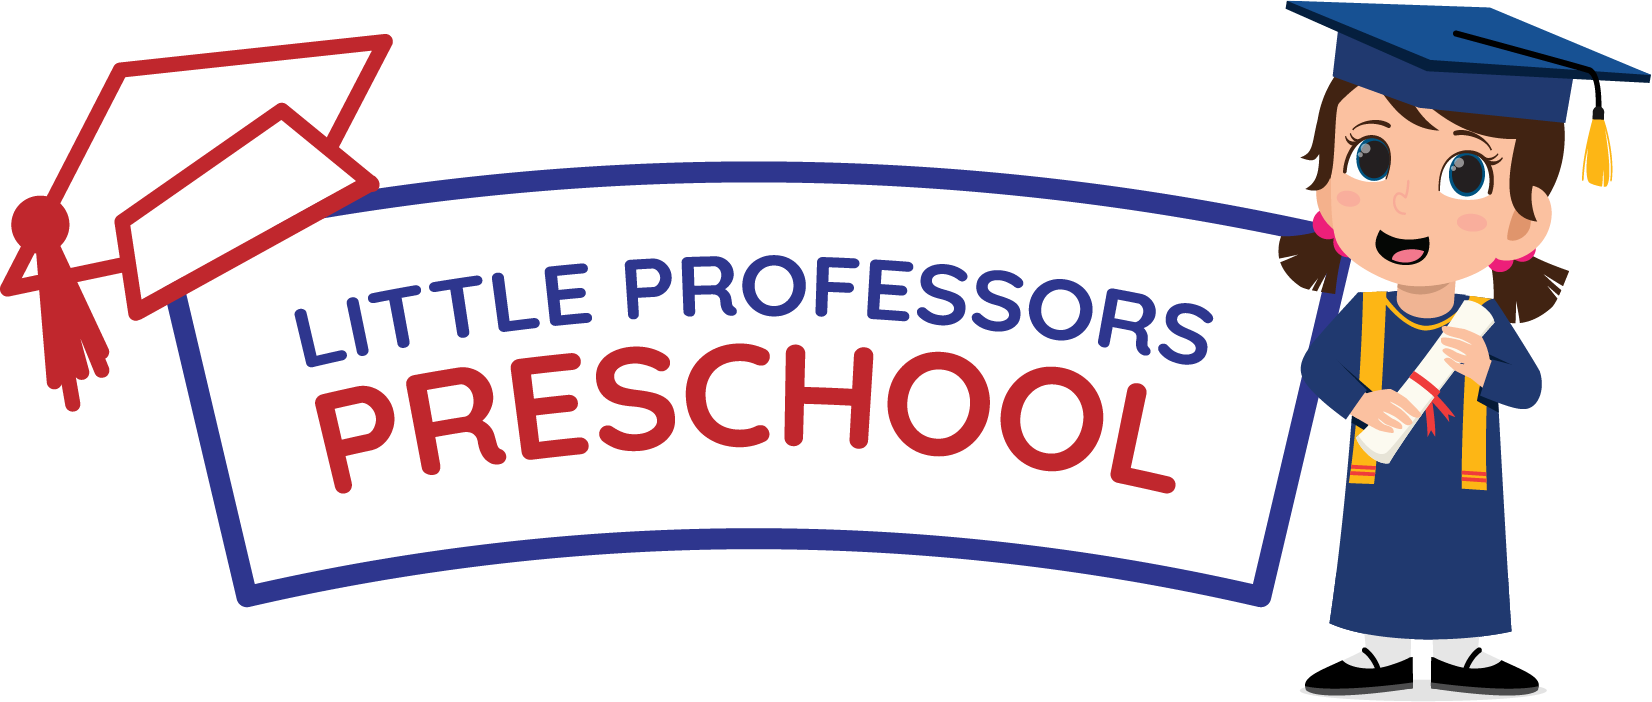 Little Professors Preschool